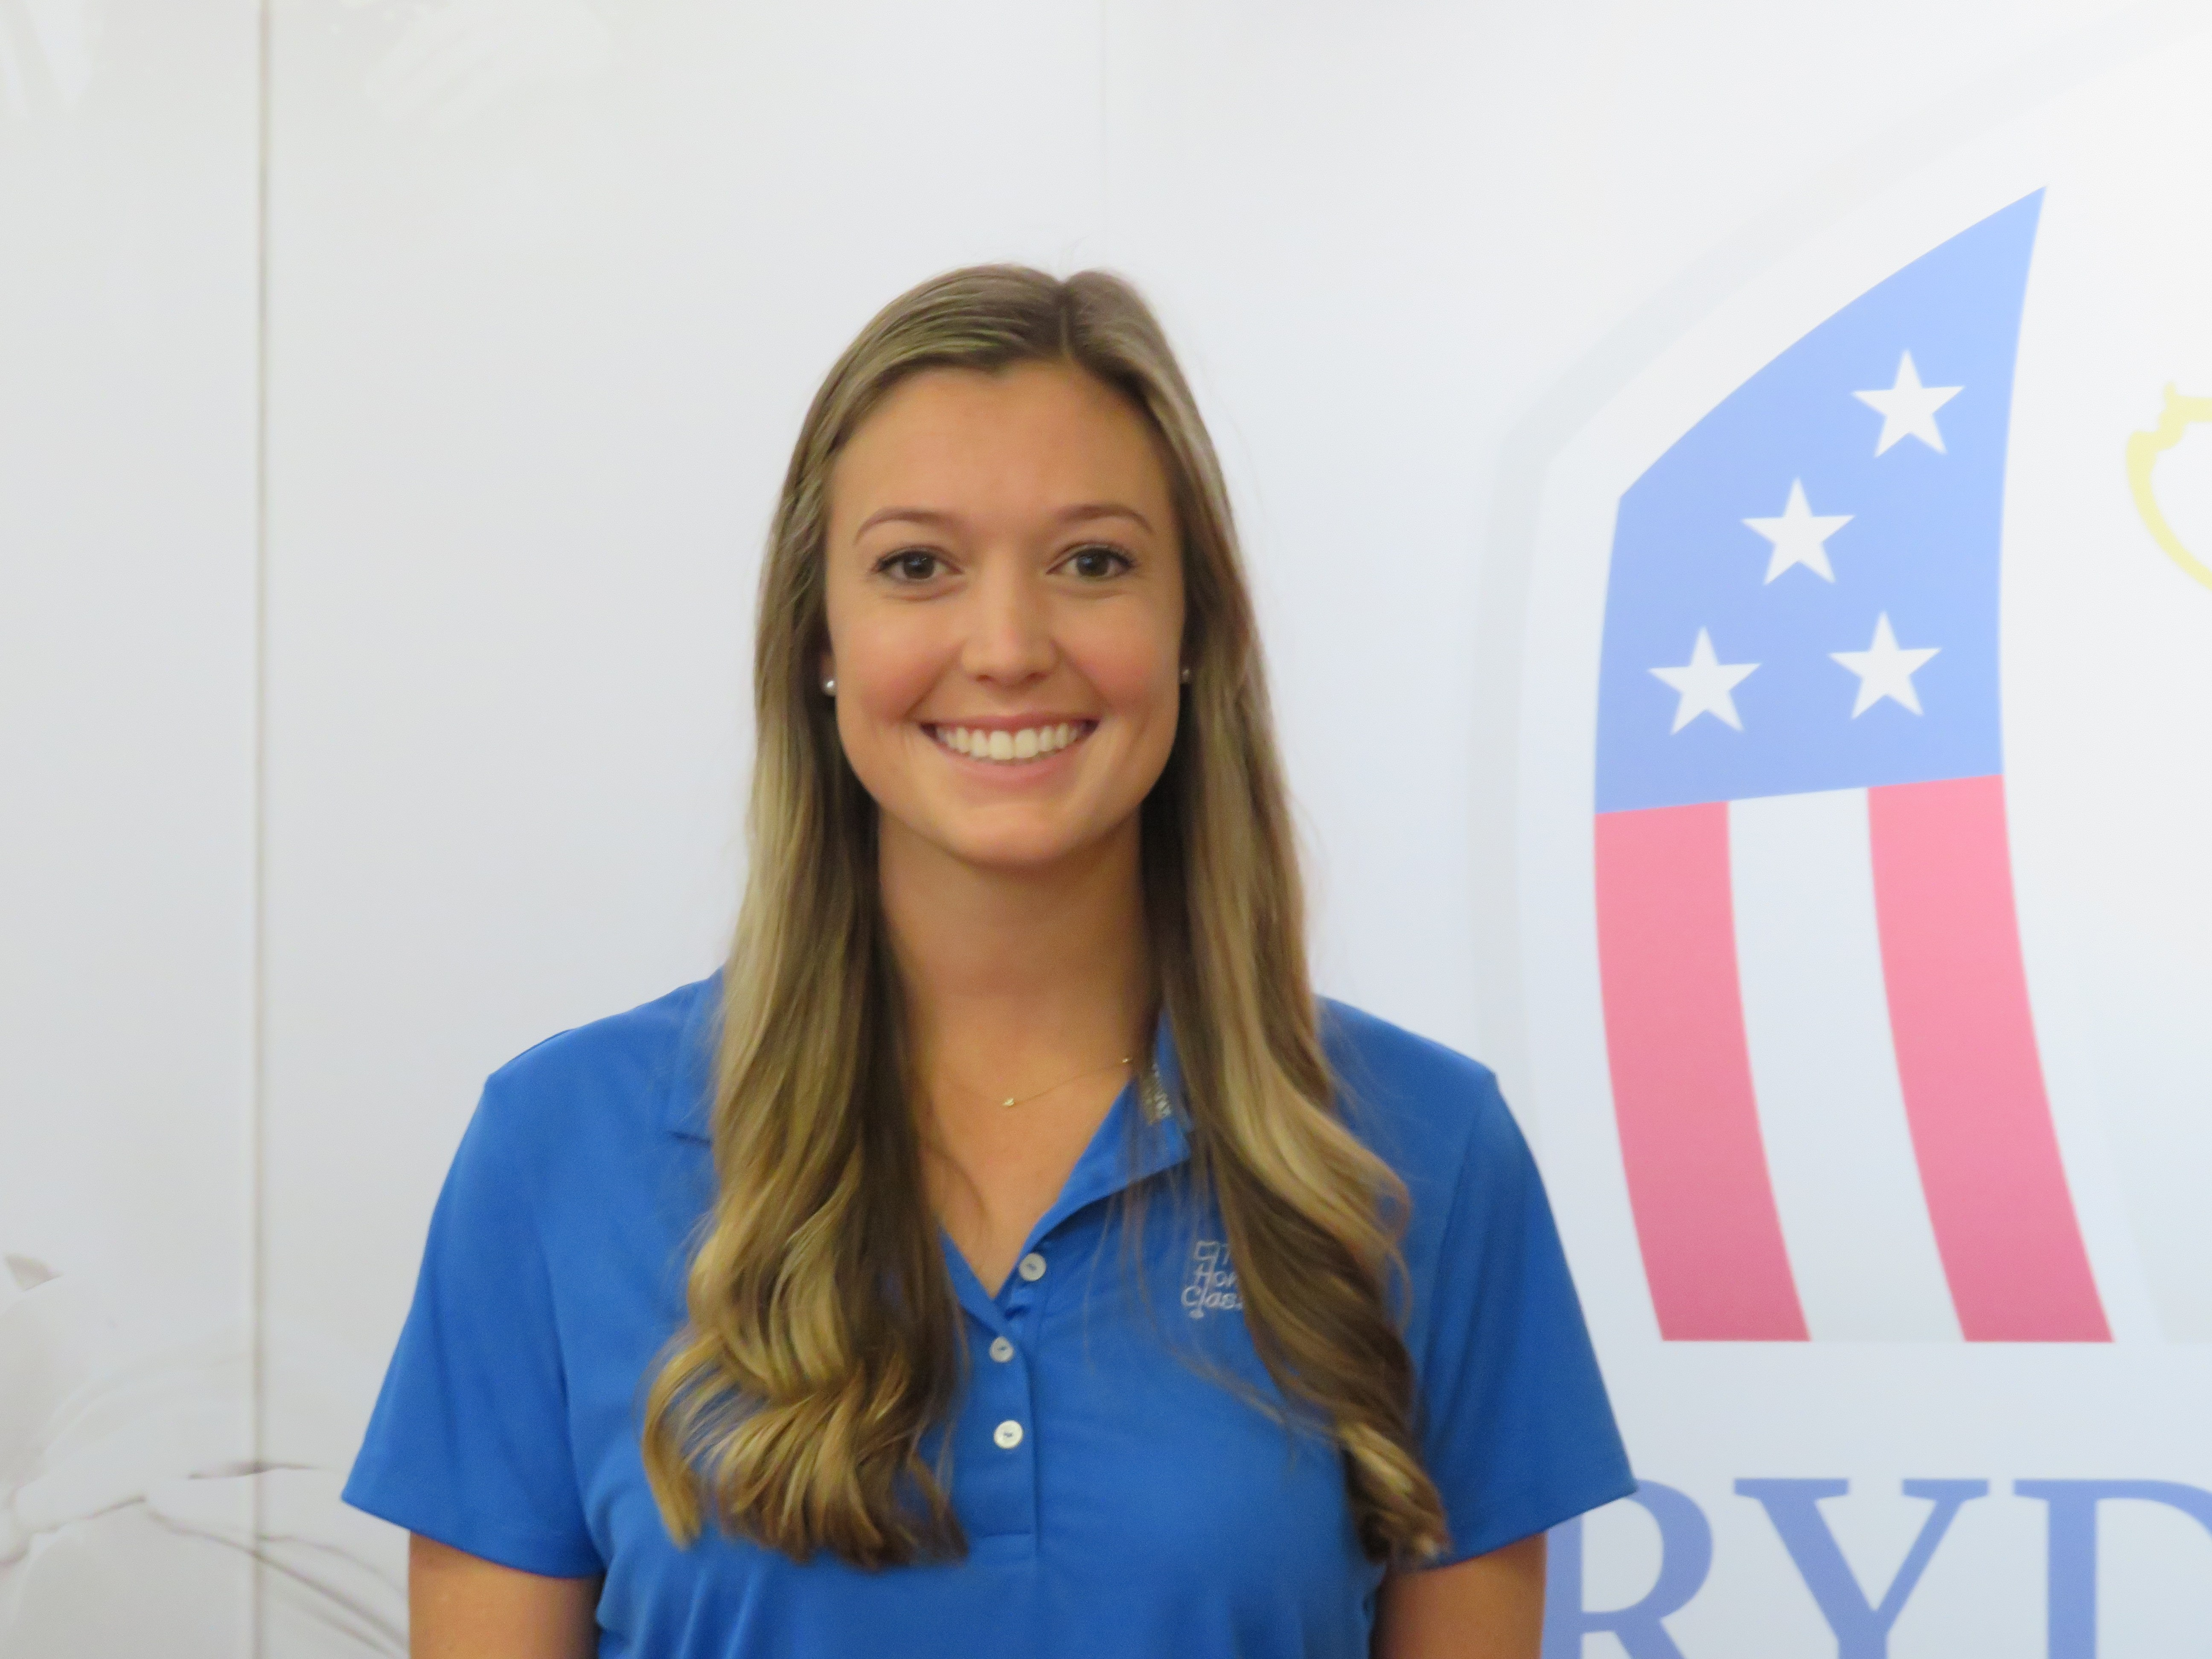 Meet Madison Temple PGA WORKS Fellow – South Florida PGA Section